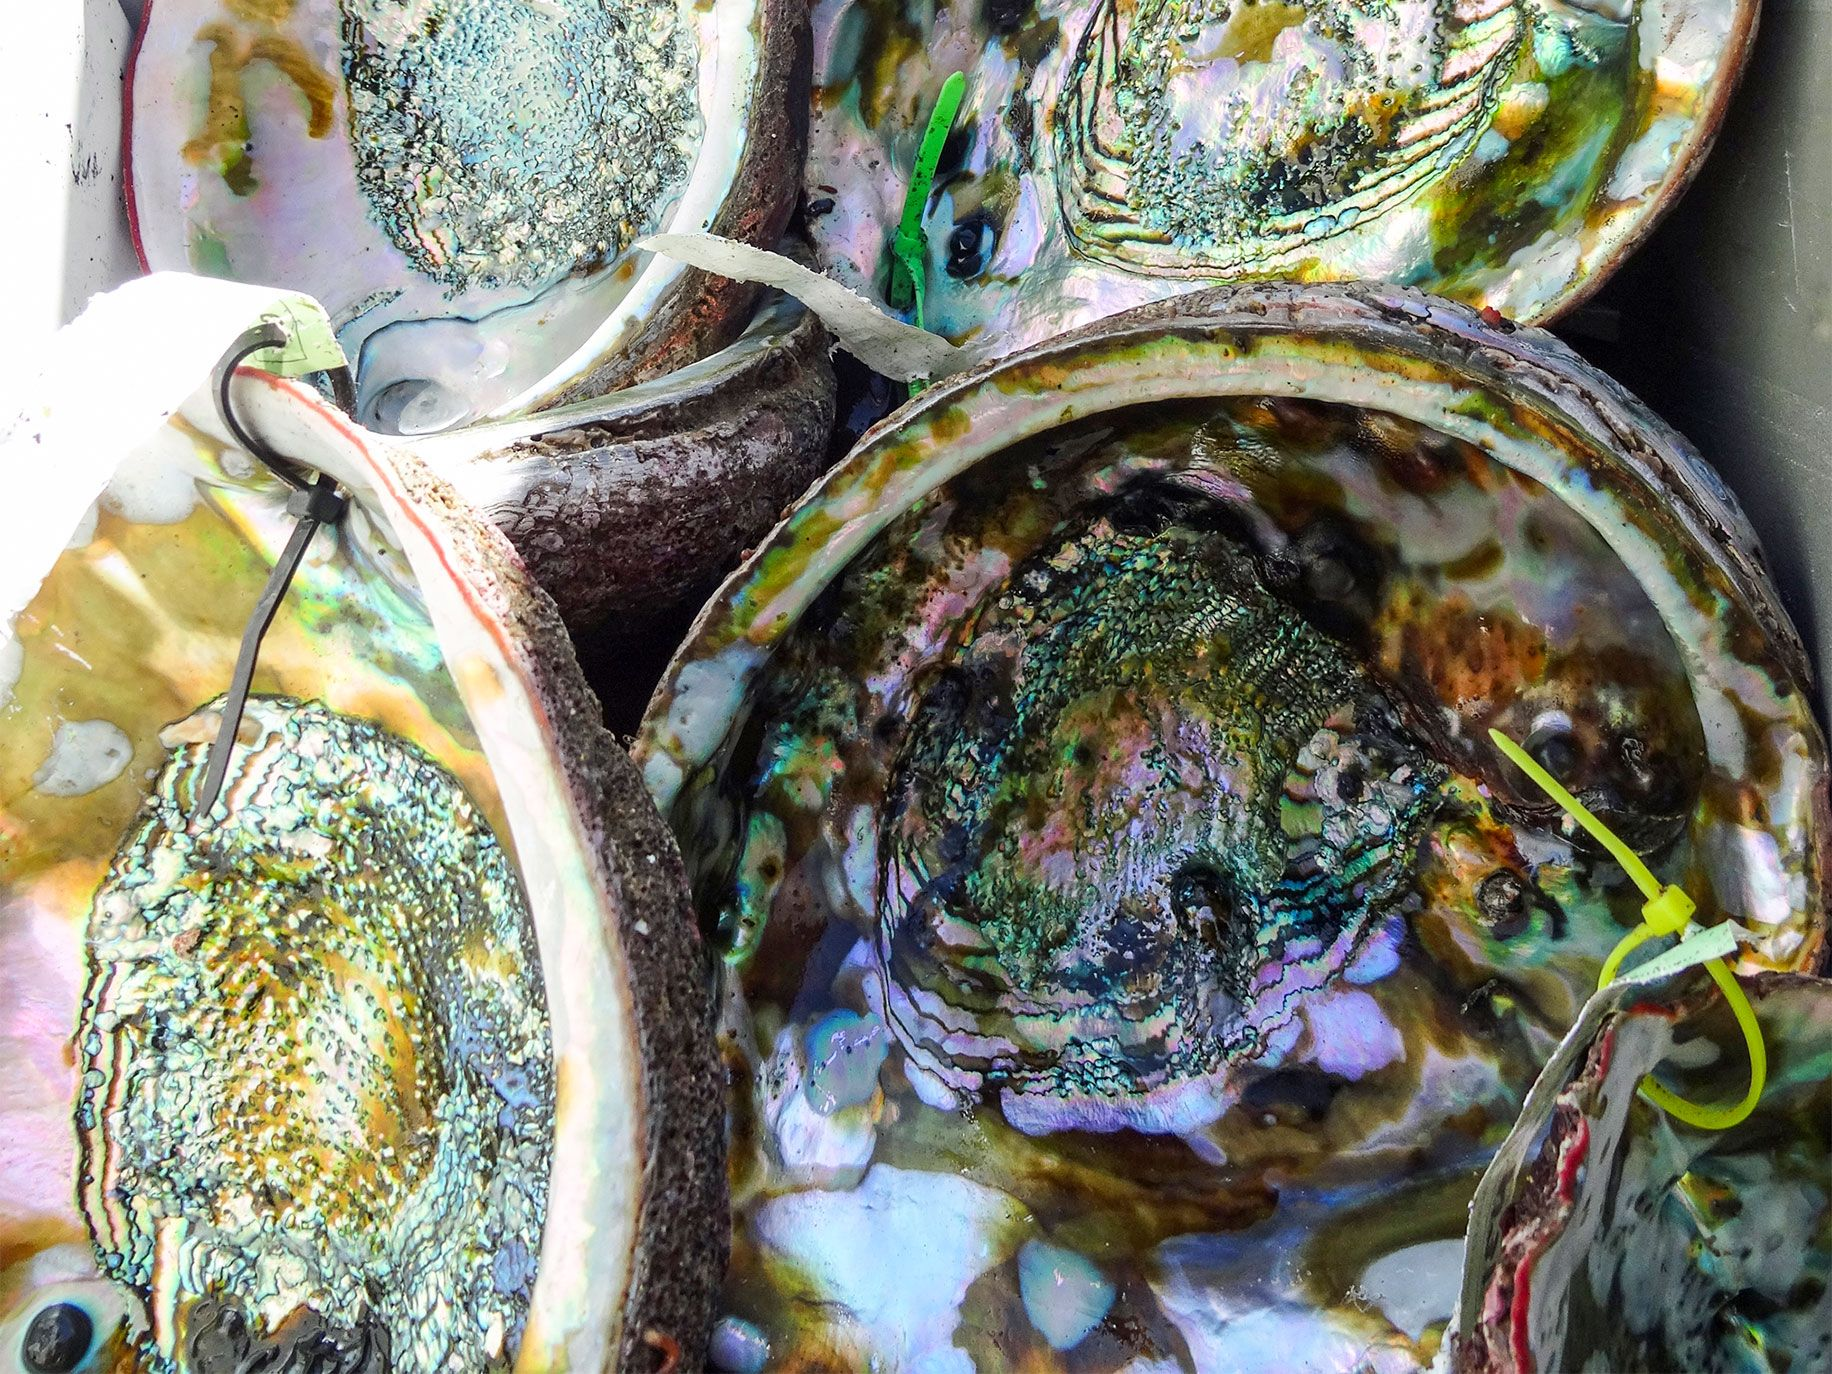 The brilliant iridescence of abalone shells have made them popular with artists, decorators and souvenir collectors.